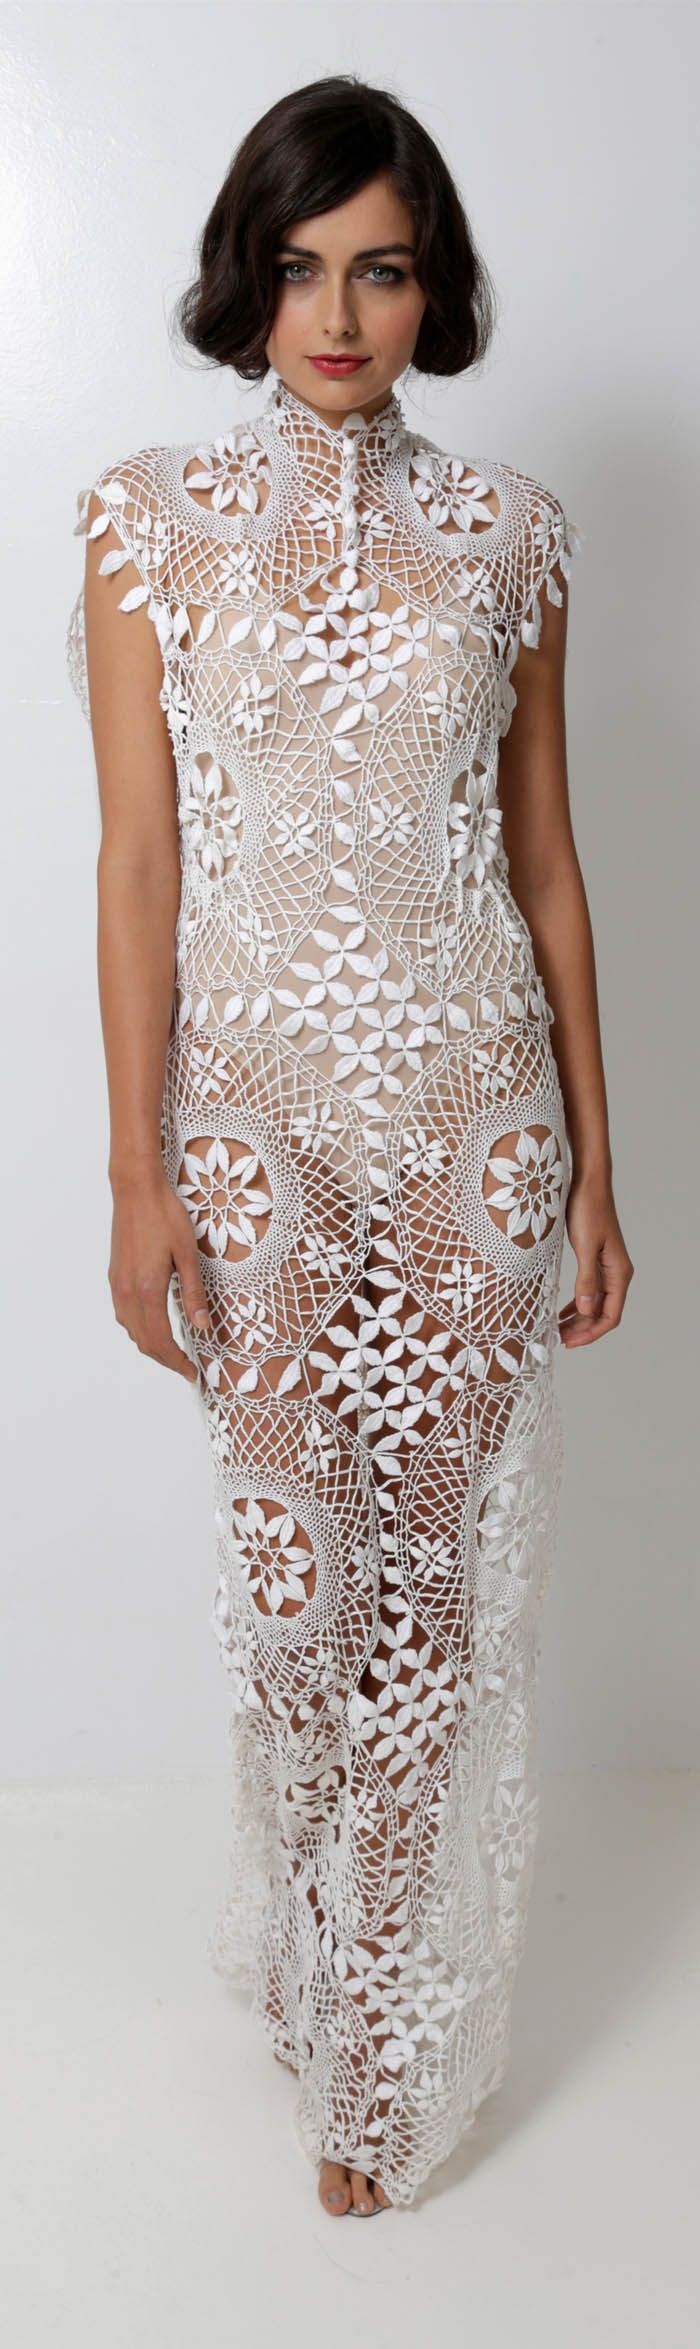 Norma Kamali - Spring Summer 2013 Ready To Wear Collection